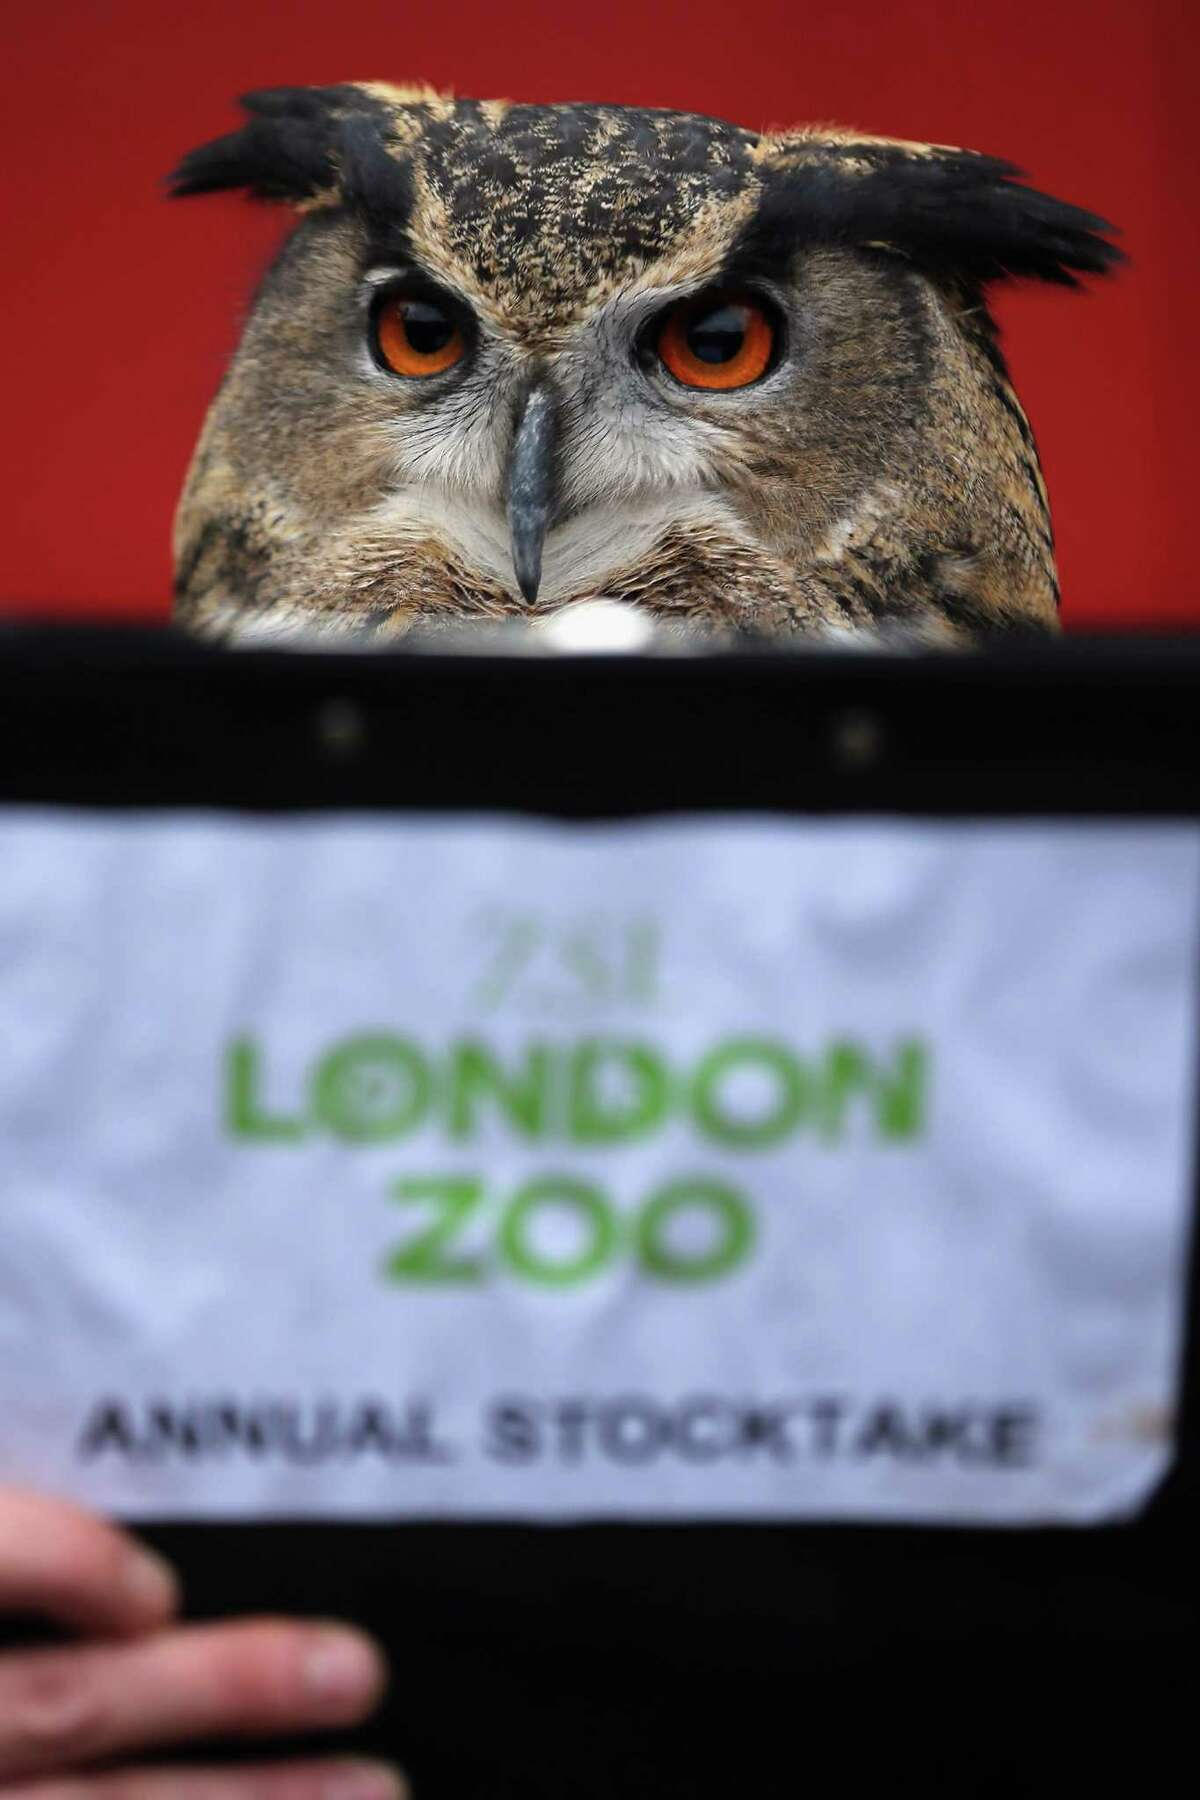 LONDON, ENGLAND - JANUARY 03: A Eurasian Eagle Owl is posed up in front of a clipboard during London Zoo's annual stocktake of animals on January 3, 2013 in London, England. The zoo's stocktake takes place annually, and gives keepers a chance to check on the numbers of every one of the animals from stick insects and frogs to tigers and camels.